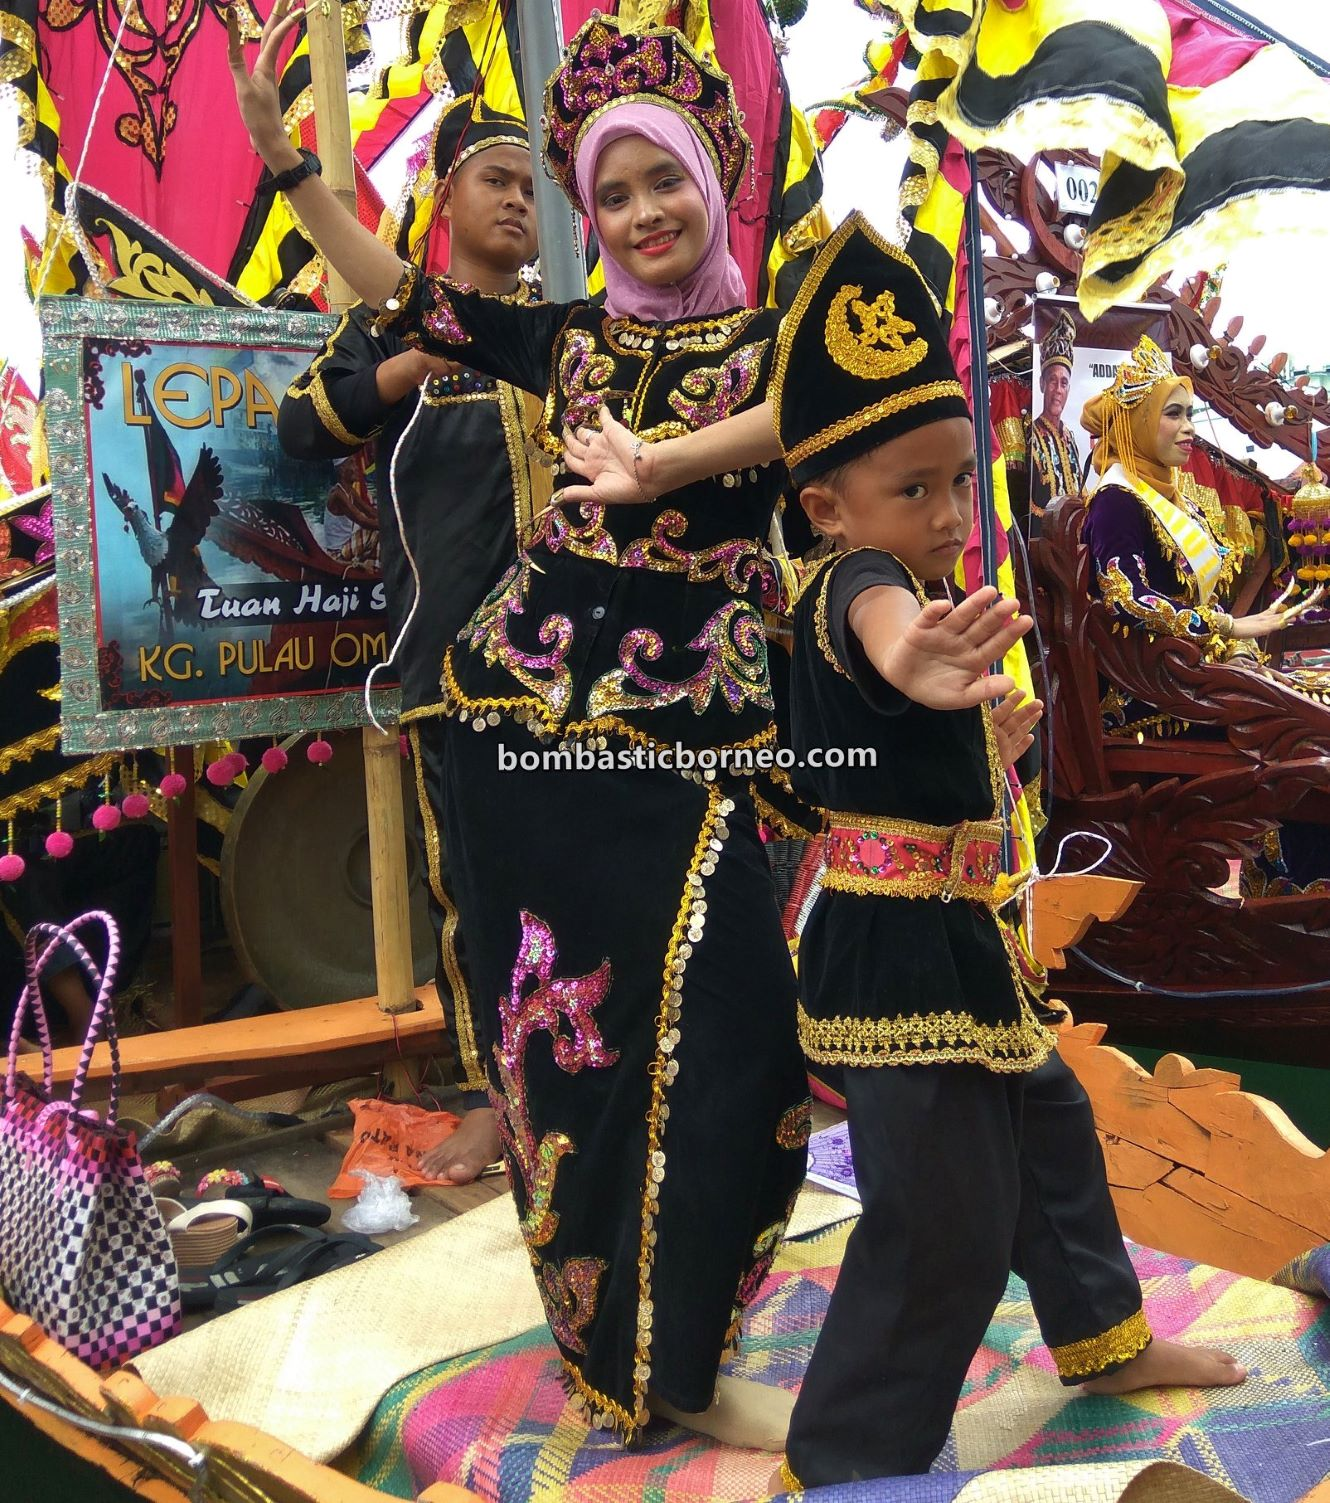 Water Festival, parade, Pesta Regatta Lepa, Sea Gypsies, Suku Bajau Laut, ethnic, culture, traditional, indigenous, Semporna, Sabah, Tourism, travel guide, Trans Border, Borneo,